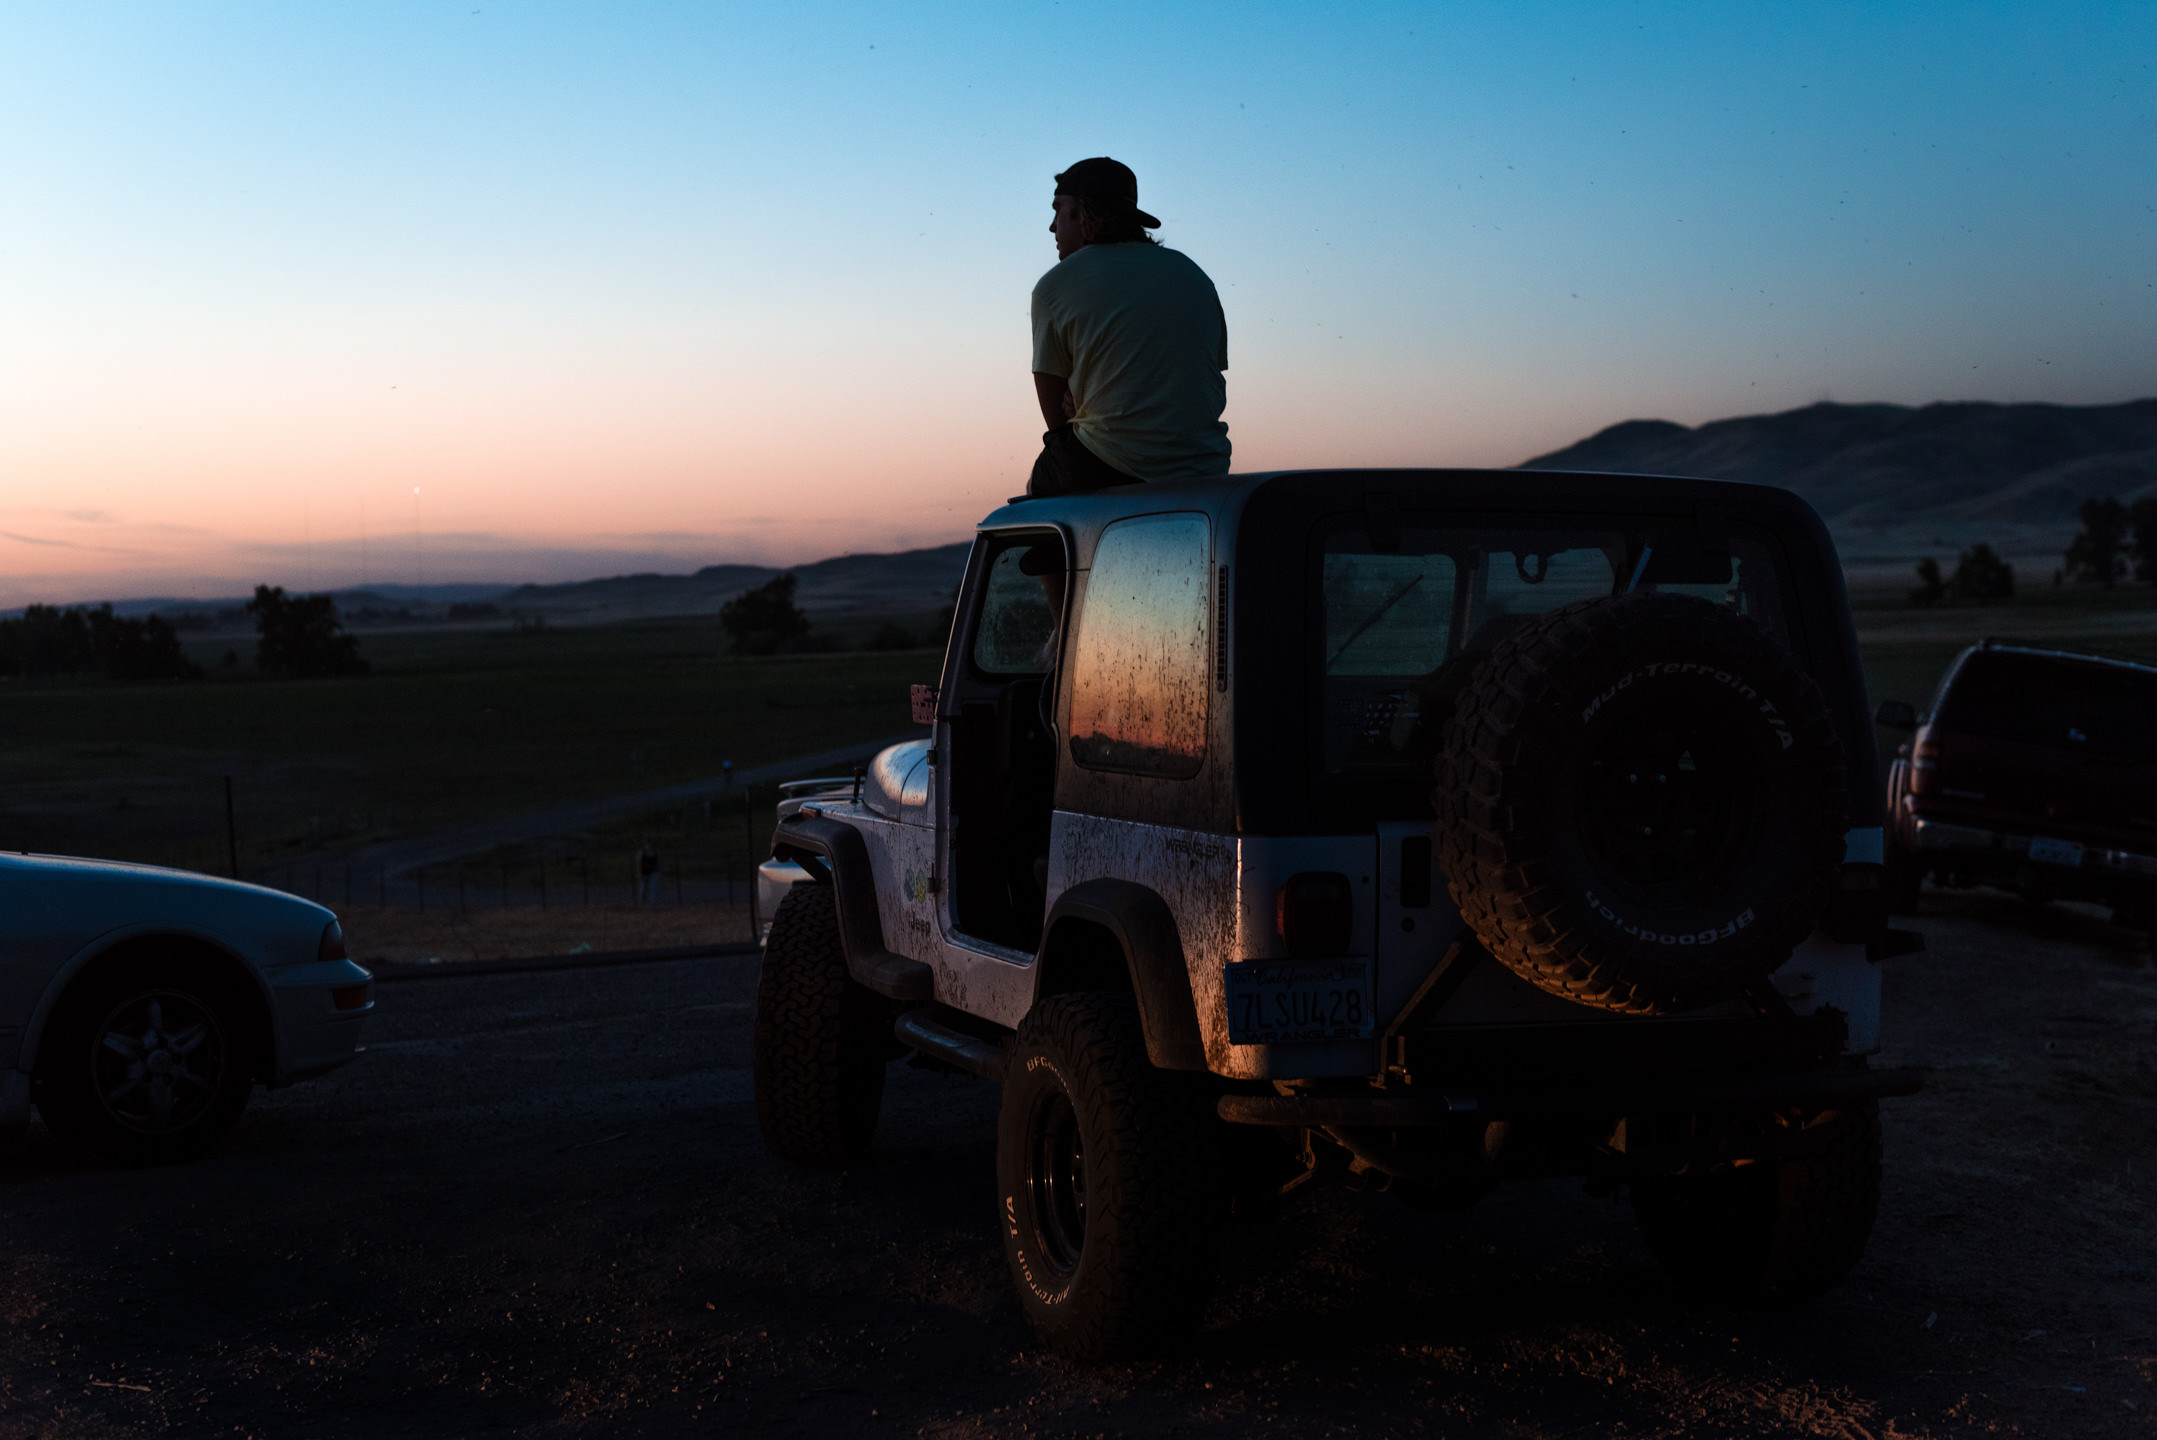 Sunset Jeep at the Dikes in Fresno California